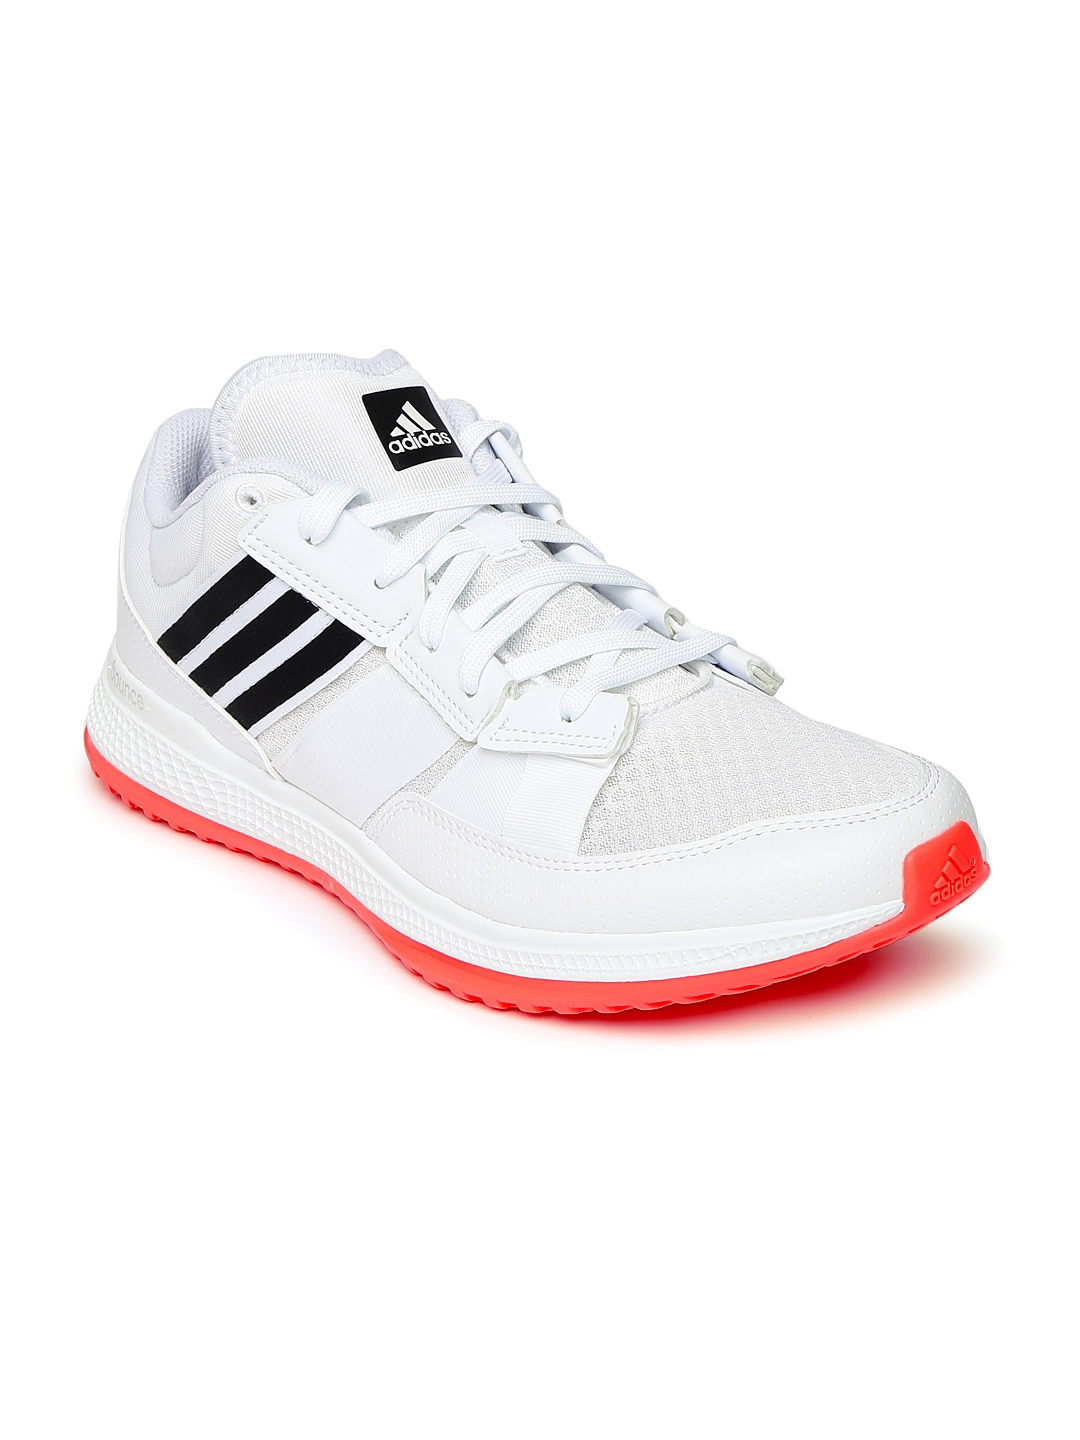 34f3d856118e0 Buy ADIDAS Men White ZG Bounce Training Shoes - Sports Shoes for Men ...